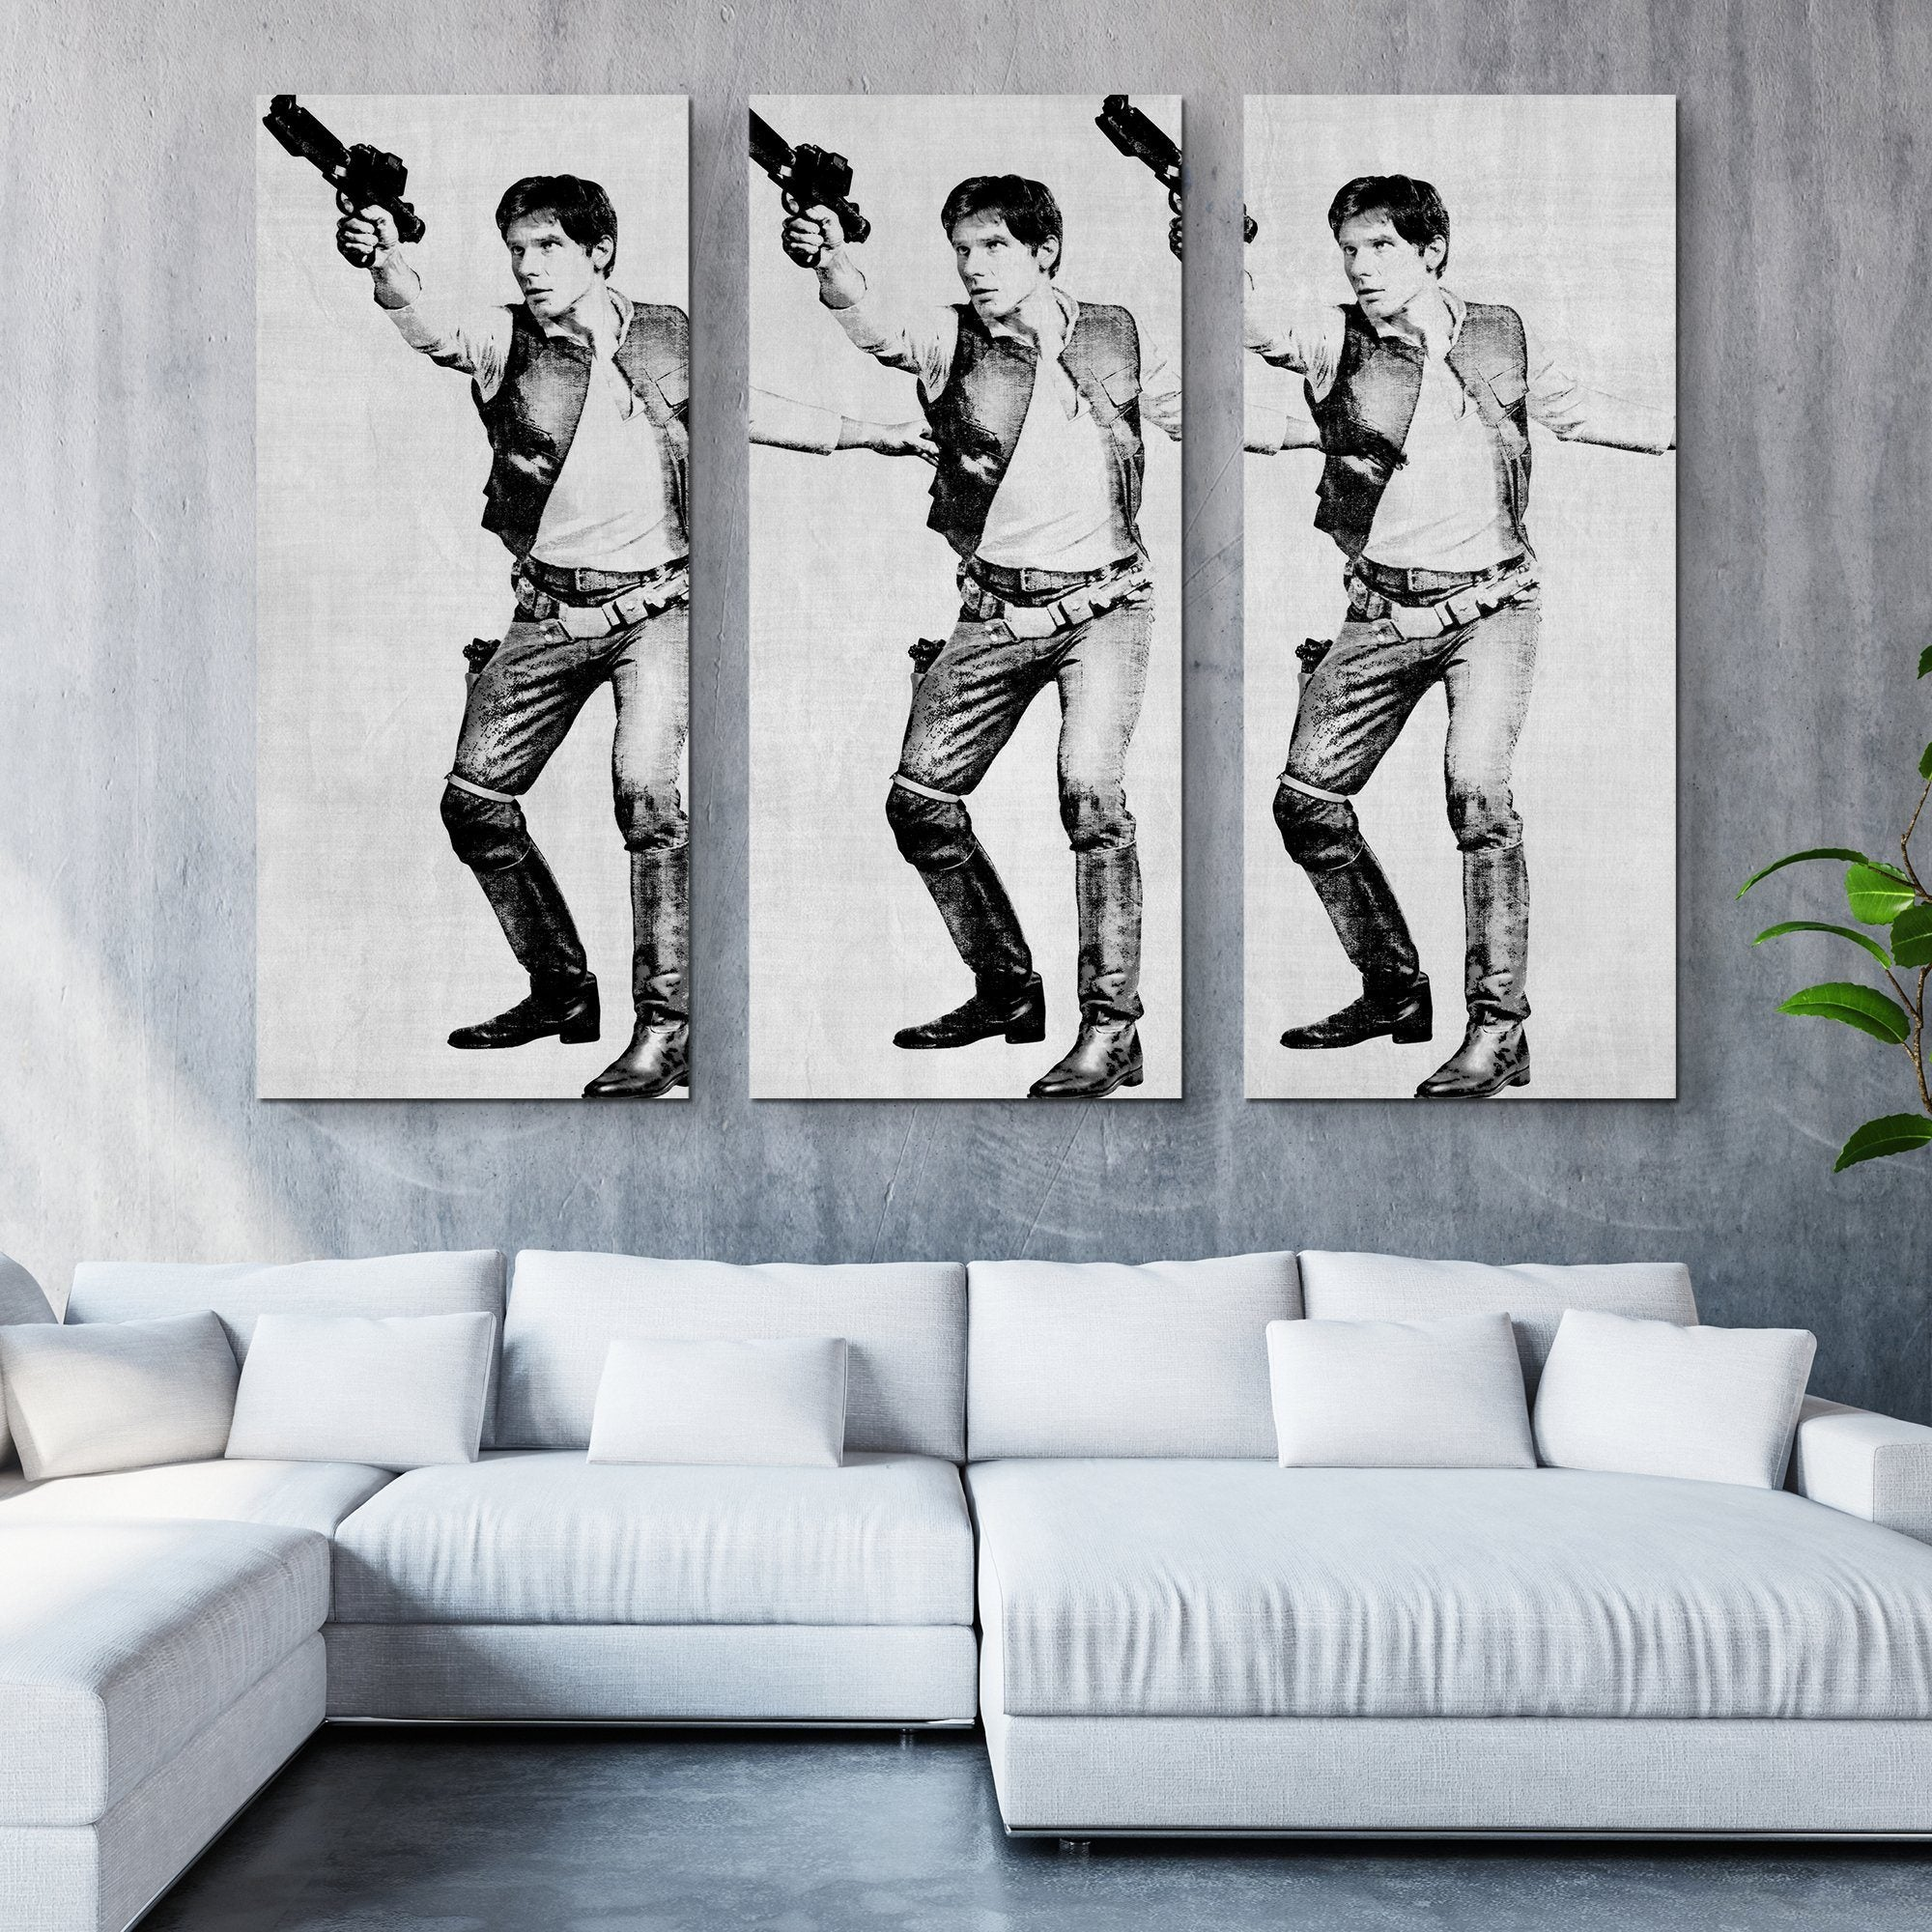 3 piece han solo wall art